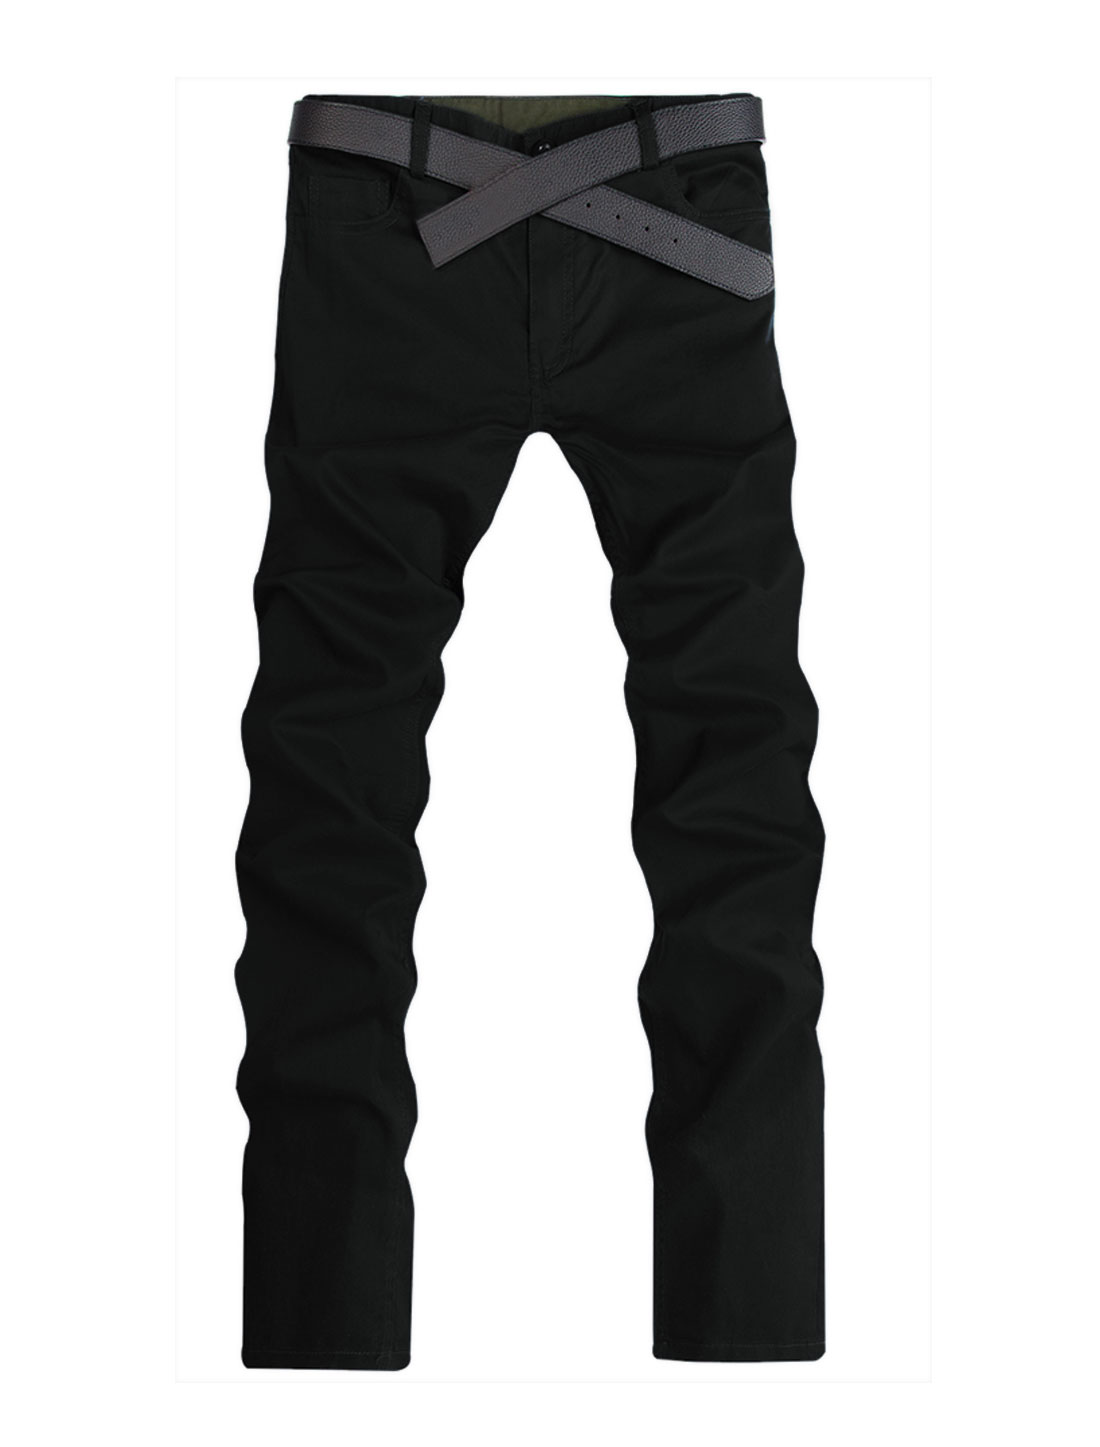 Summer Zip Fly Front Pockets Casual Pants for Men Black W32